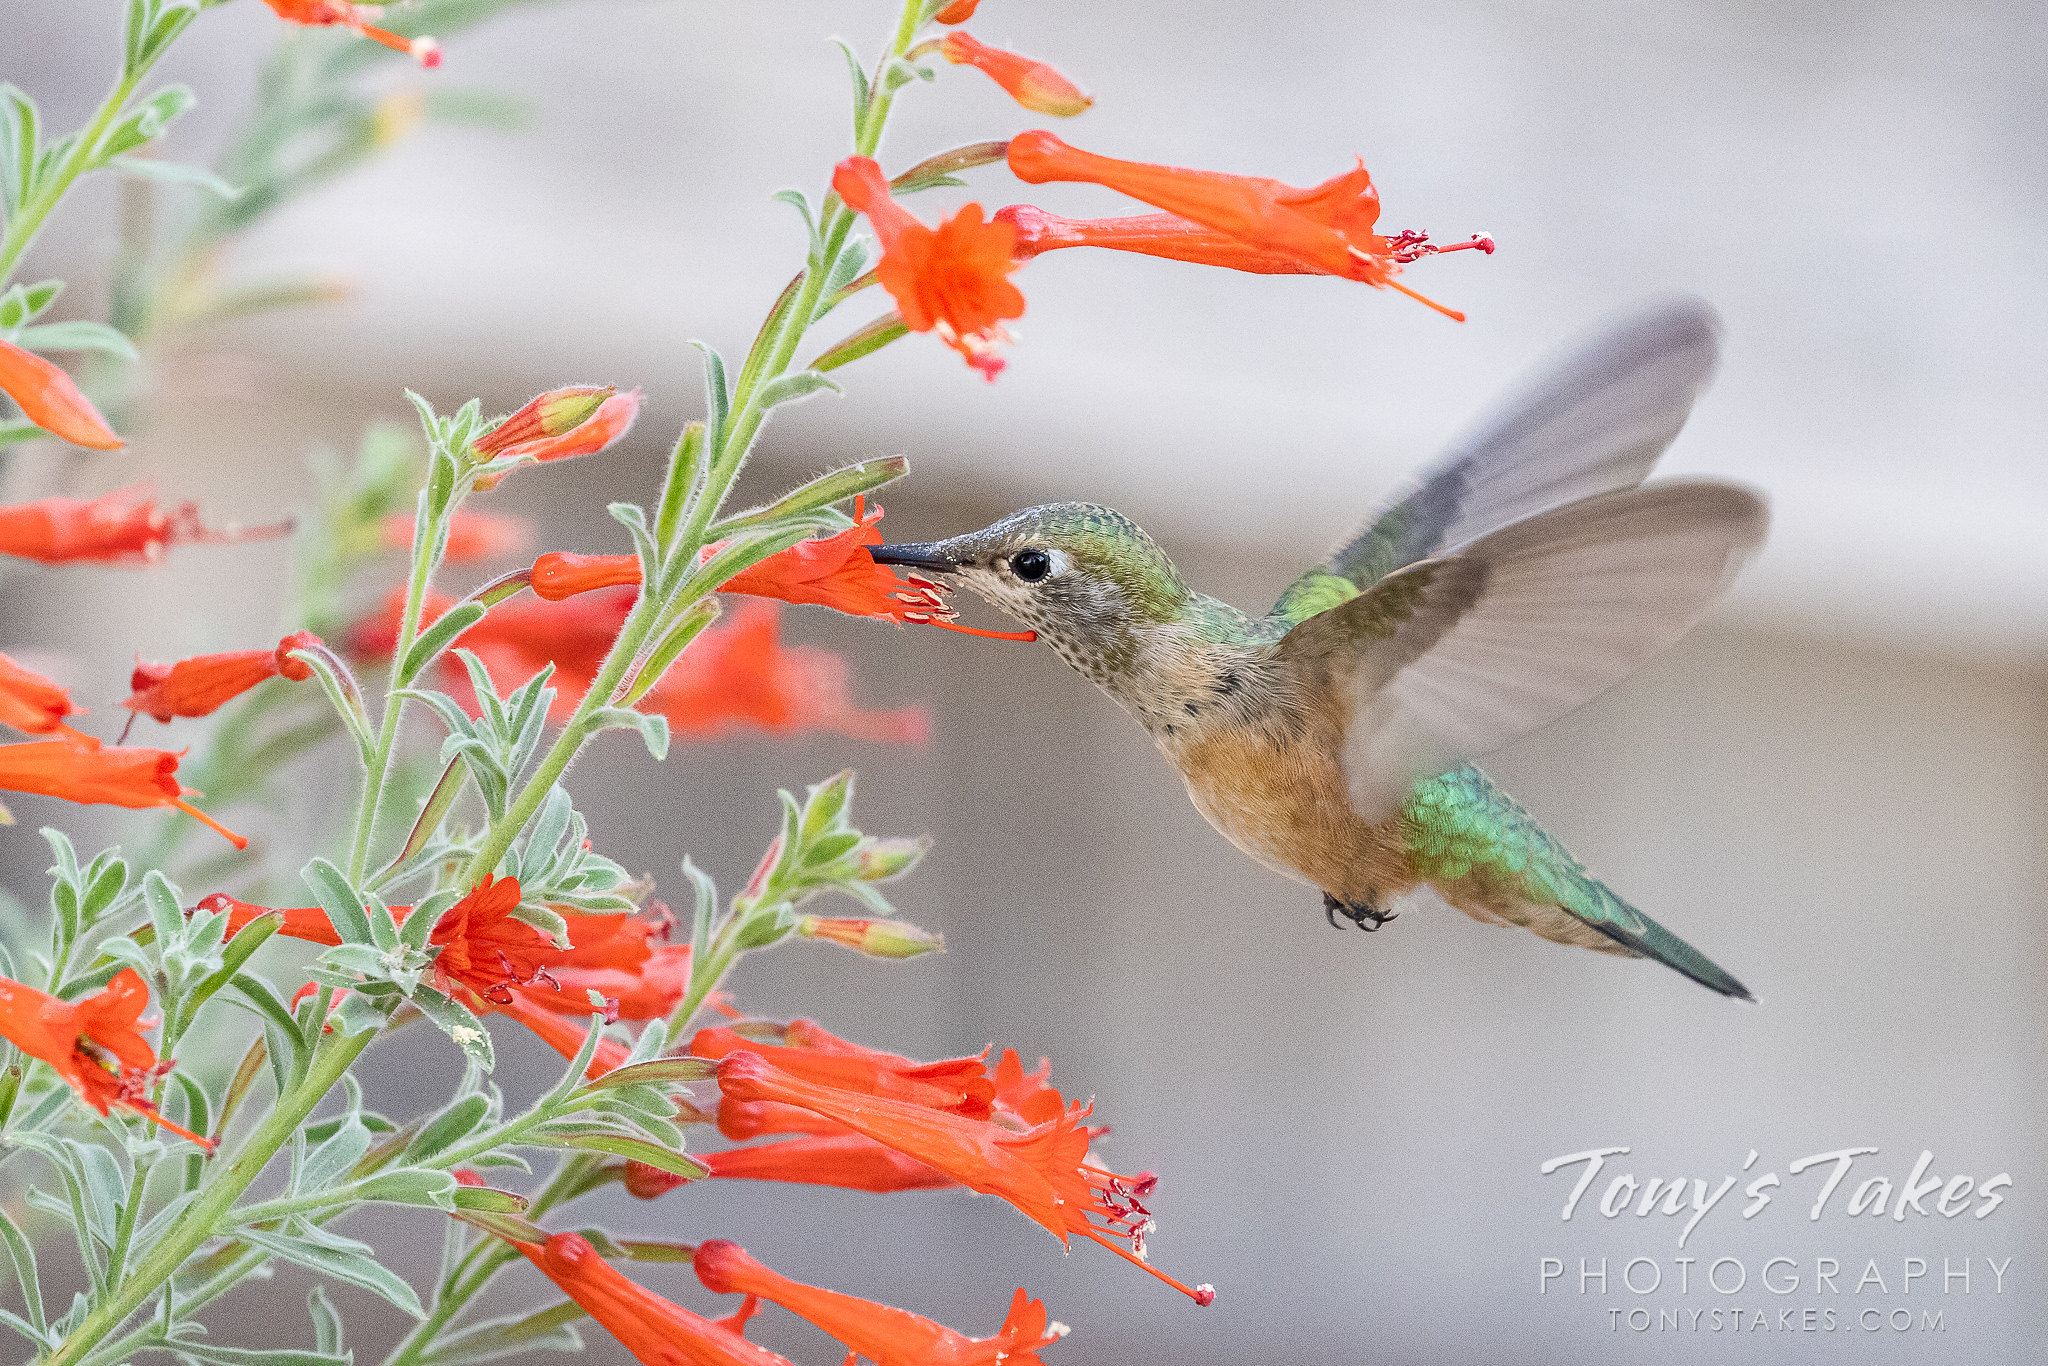 A broad-tailed hummingbird gets a snack from a flower in Thornton, Colorado. (© Tony's Takes)